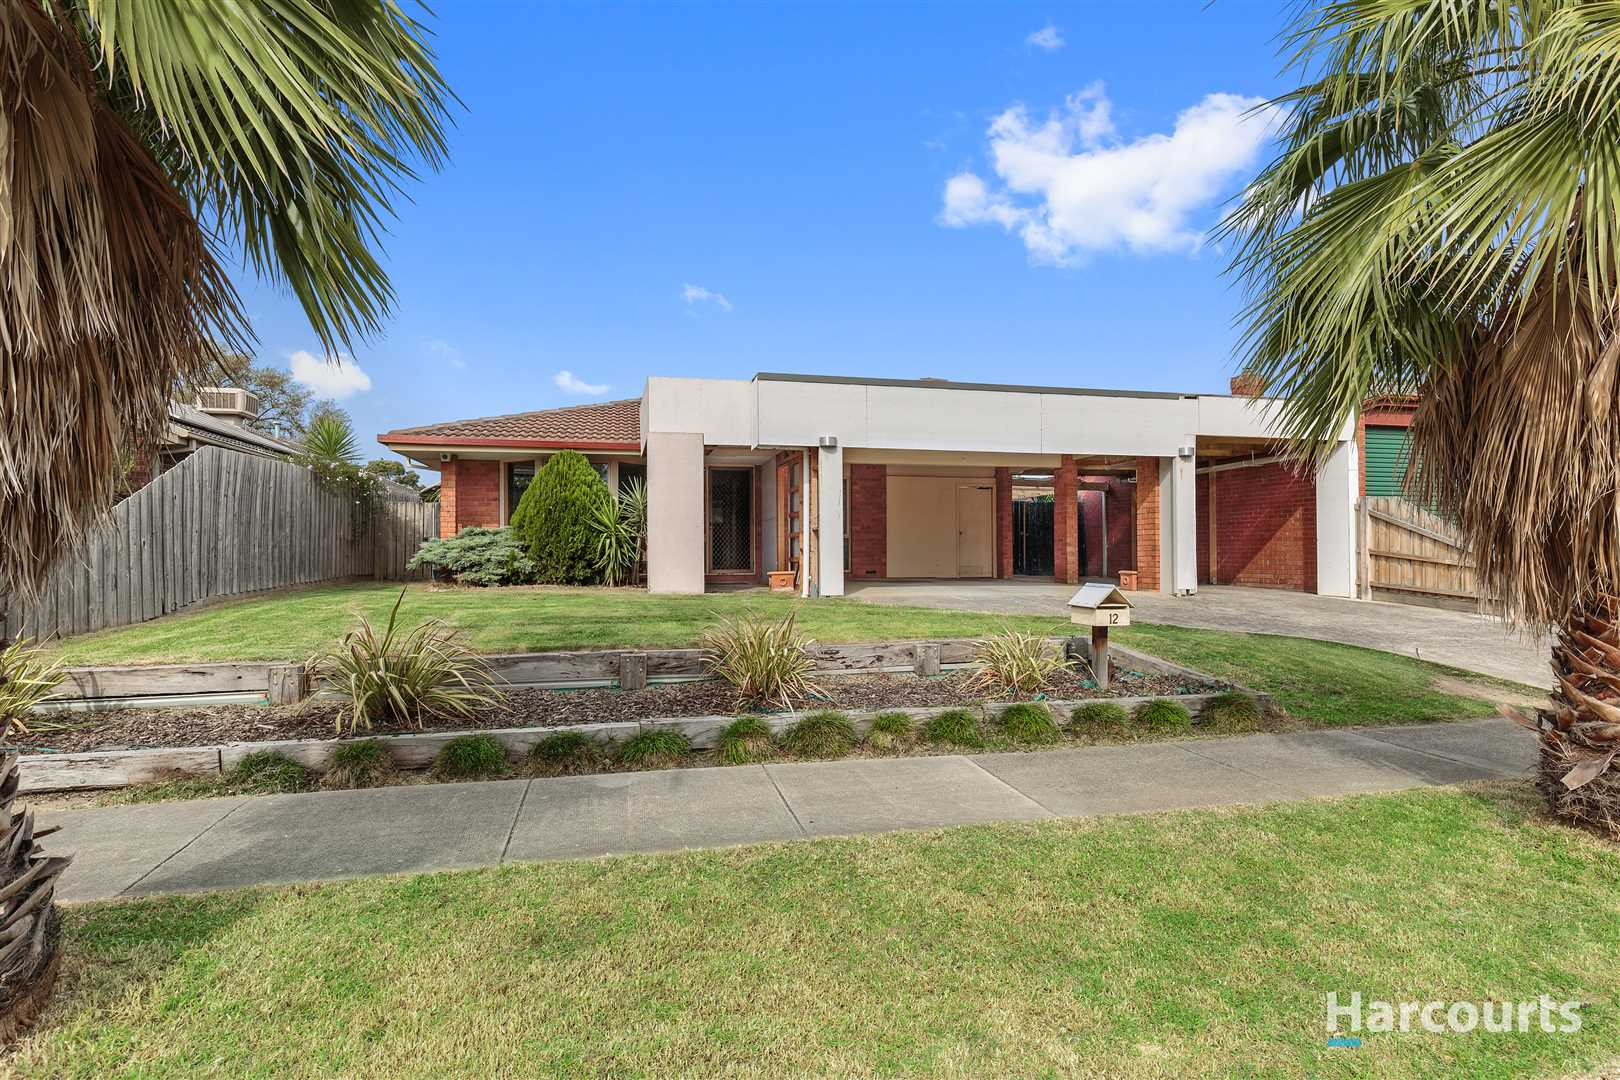 Excellent Location, Three Bedrooms, Six Car Garaging Space P